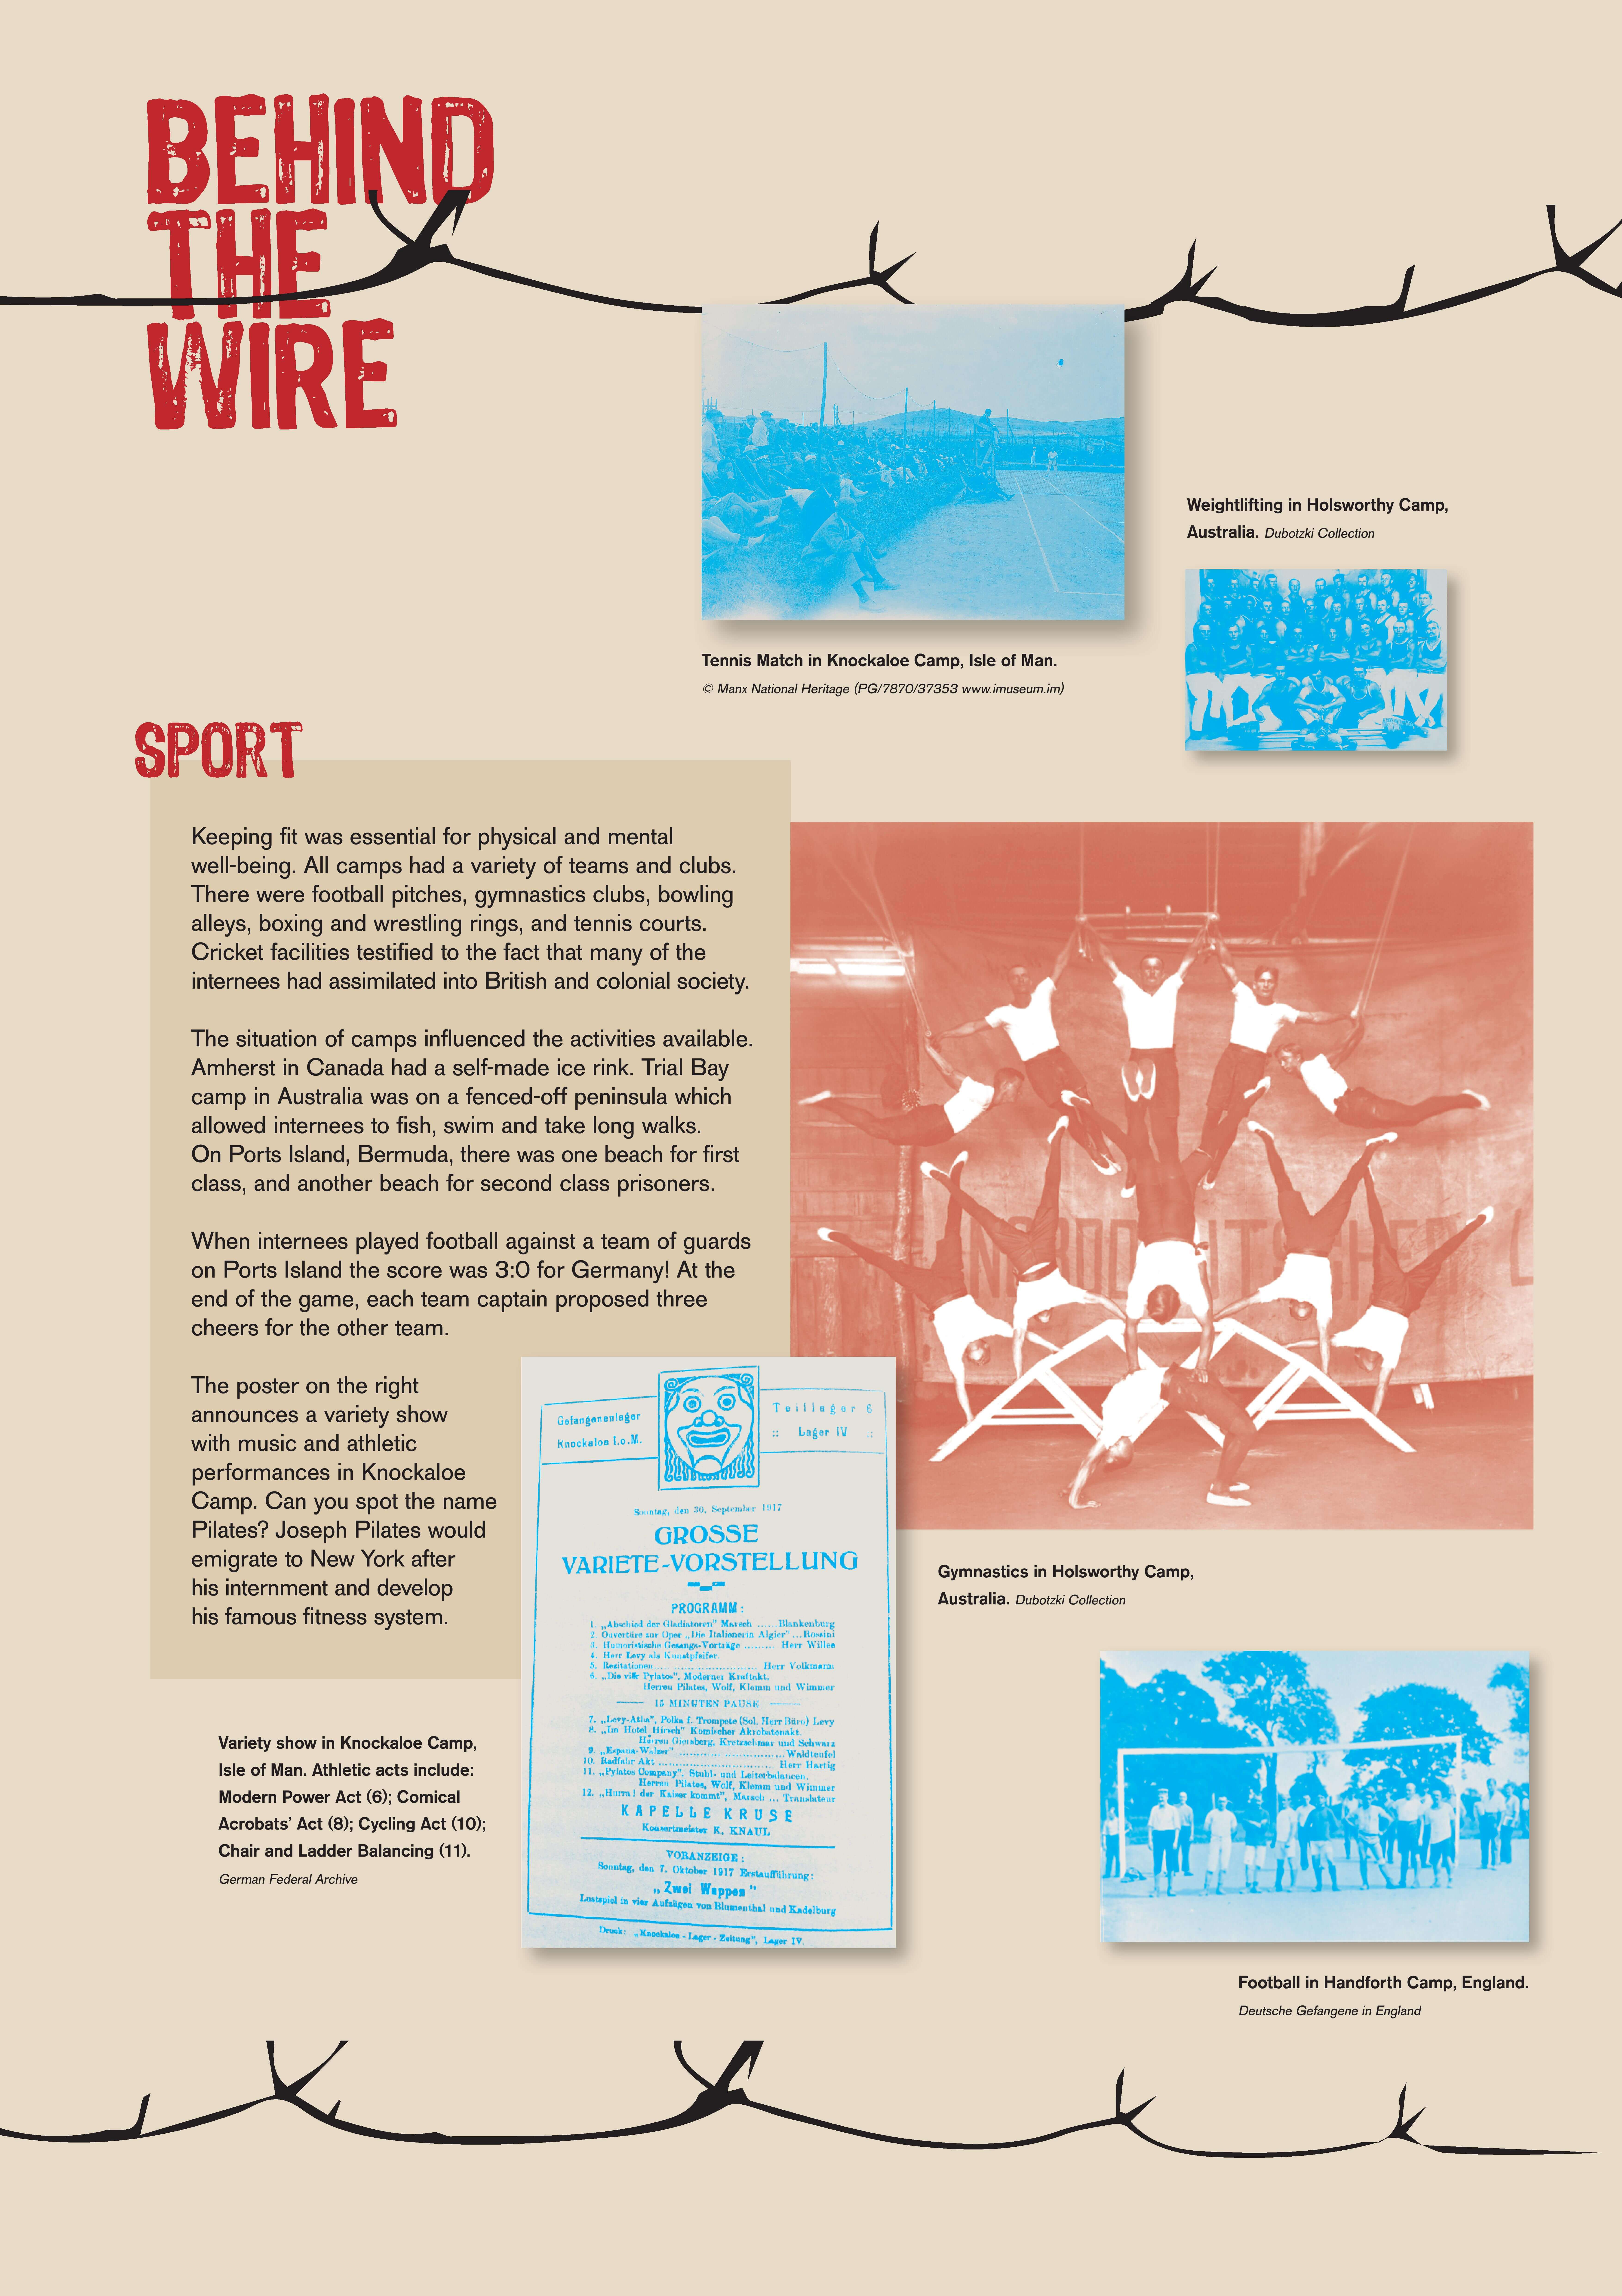 14-Behind the Wire-A1-Exhibition-Sport_DIGITAL VERSION-page-001-min